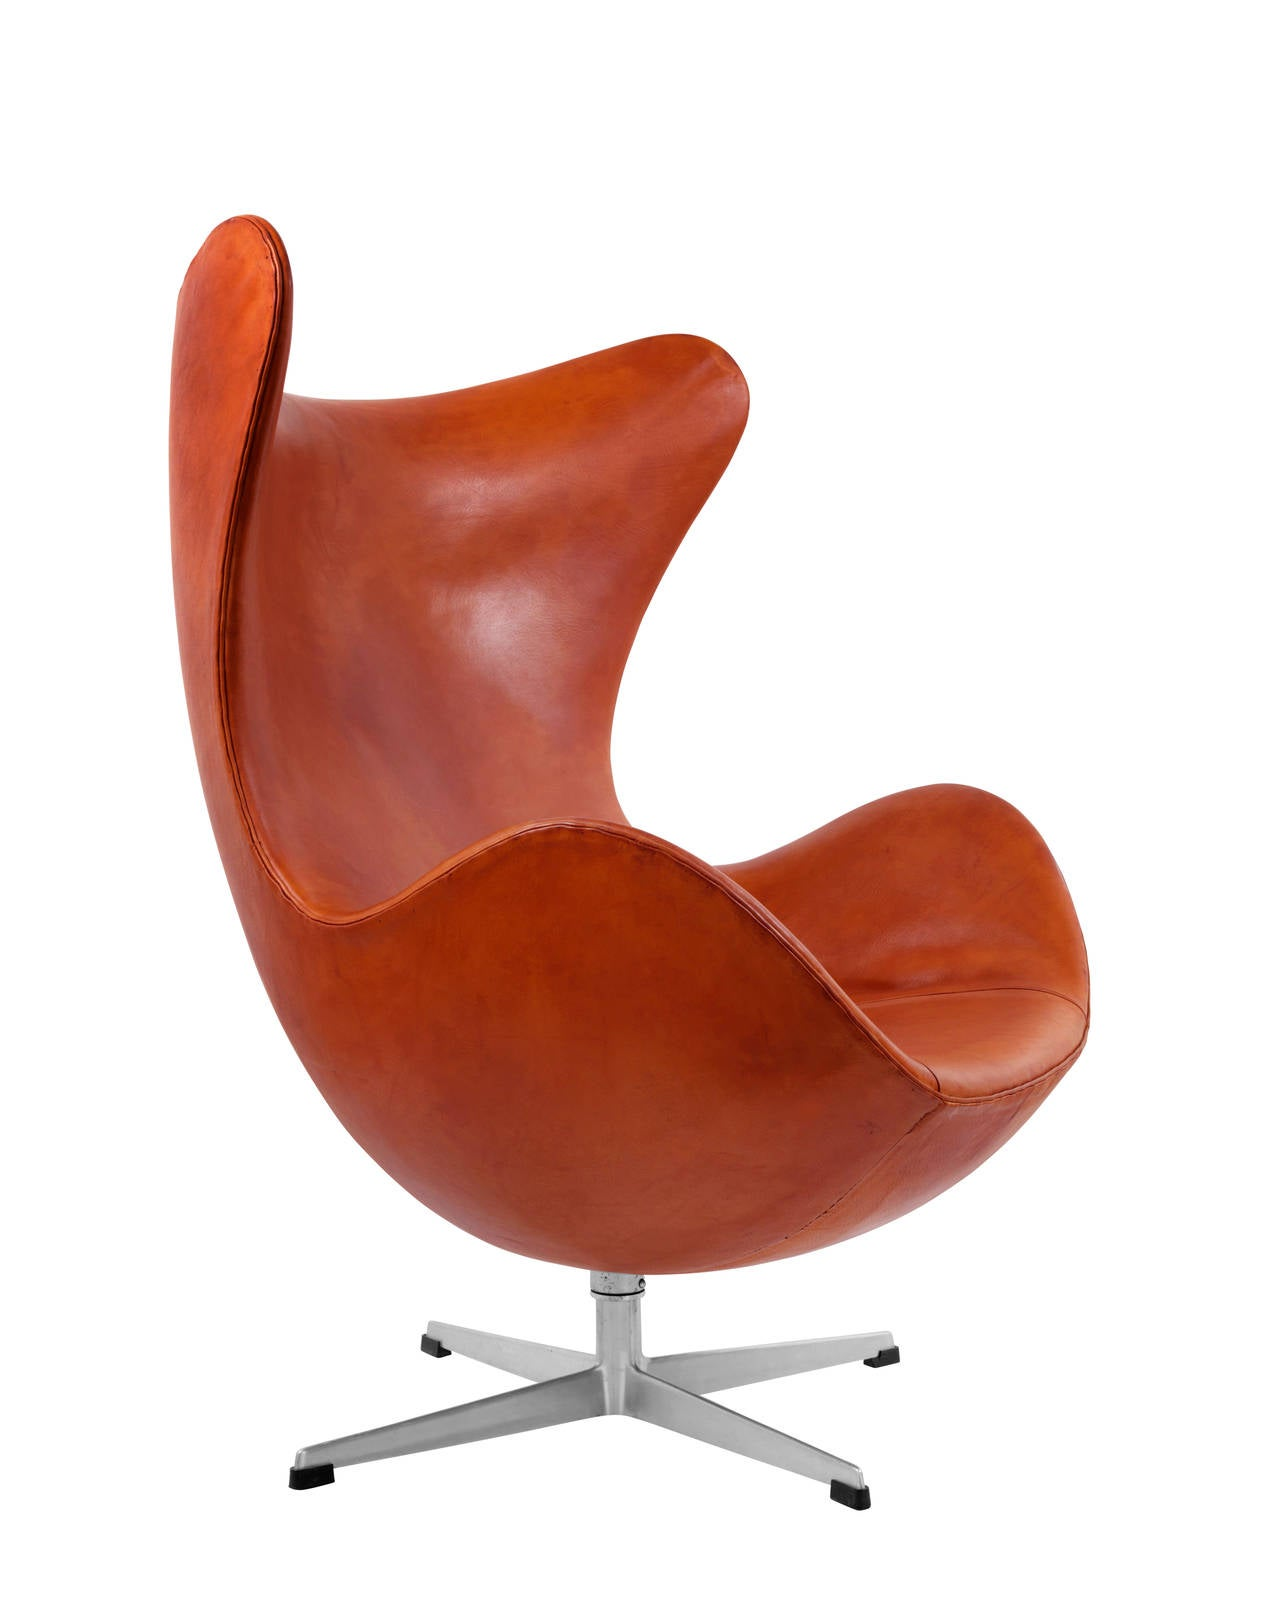 stunning and early egg chair by arne jacobsen 1958 for sale at 1stdibs. Black Bedroom Furniture Sets. Home Design Ideas